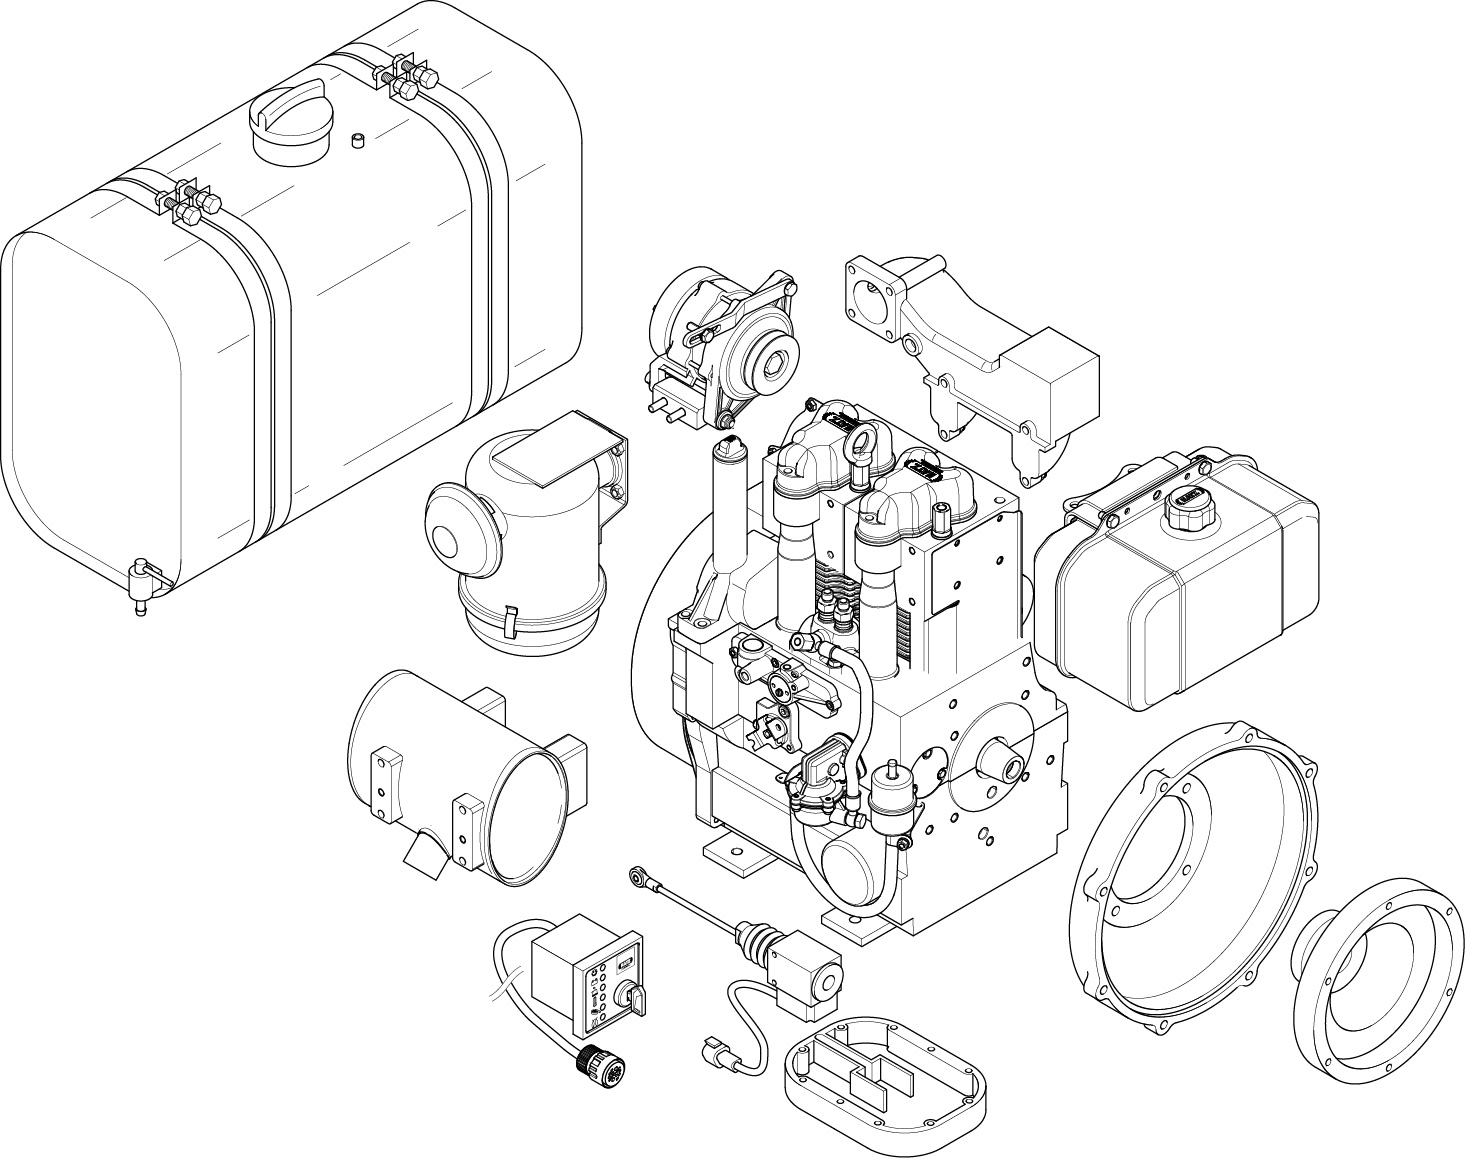 hatz diesel engine wiring diagram